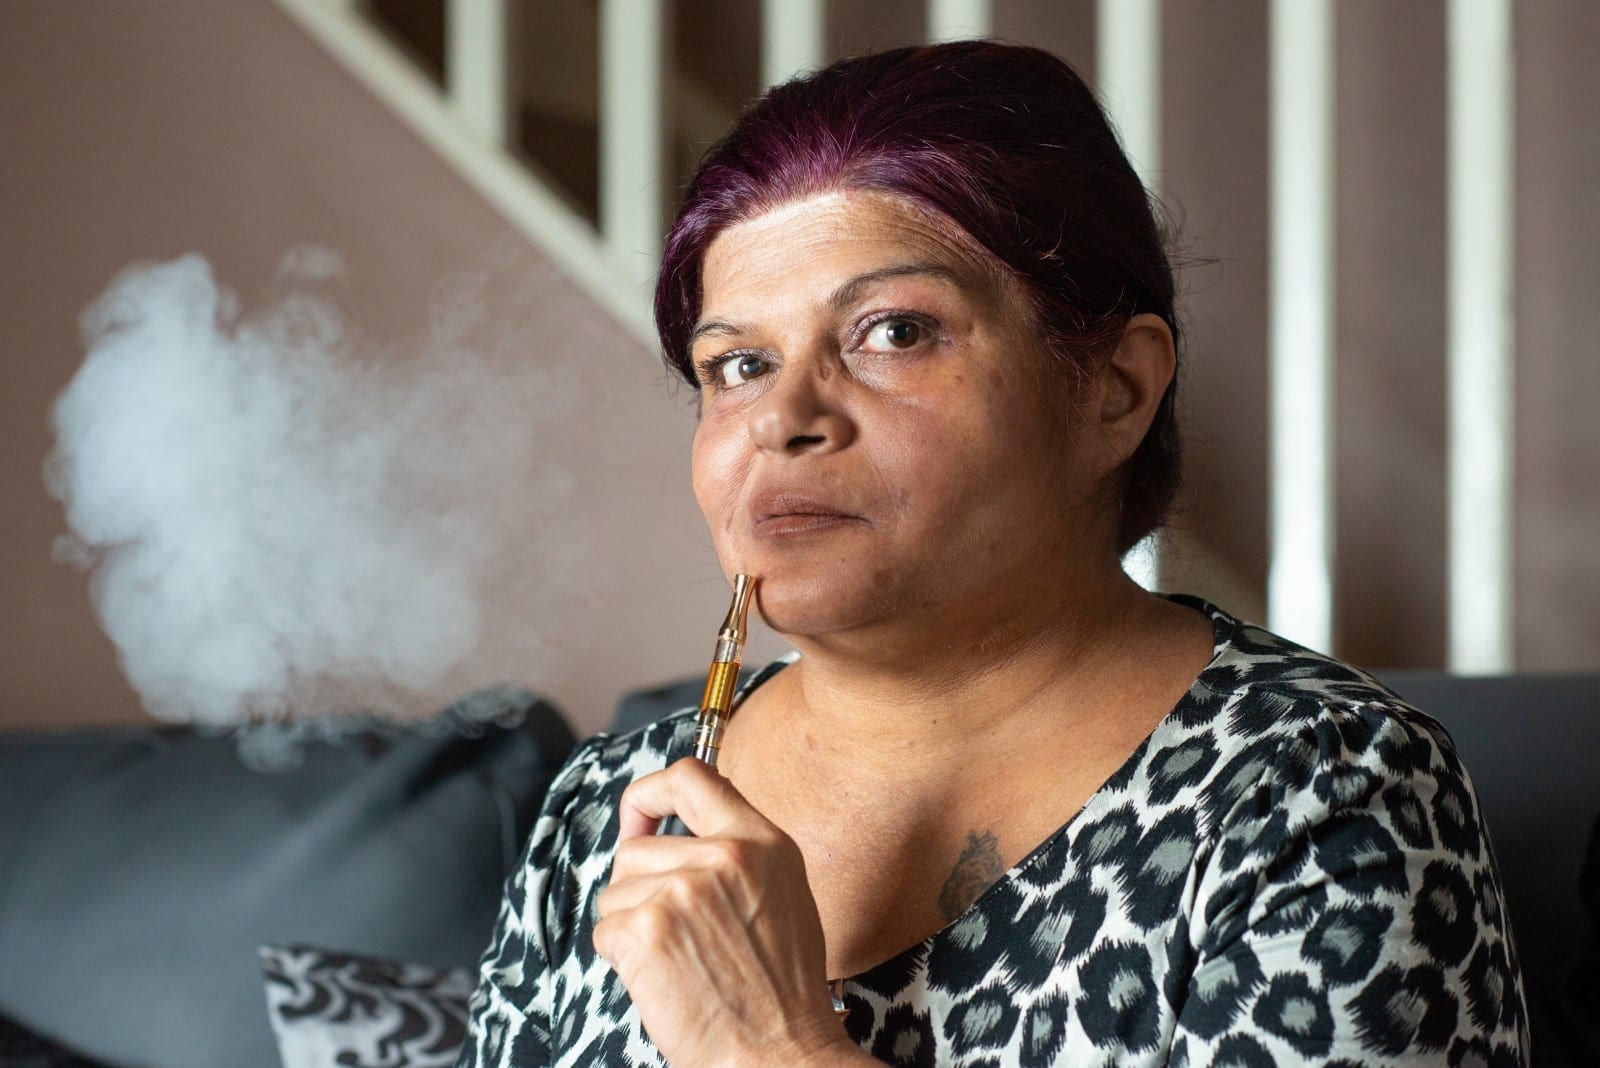 Mum With Terminal Cancer Could Have 'CURED' Herself - After Refusing NHS Treatment To Take Cannabis Oil